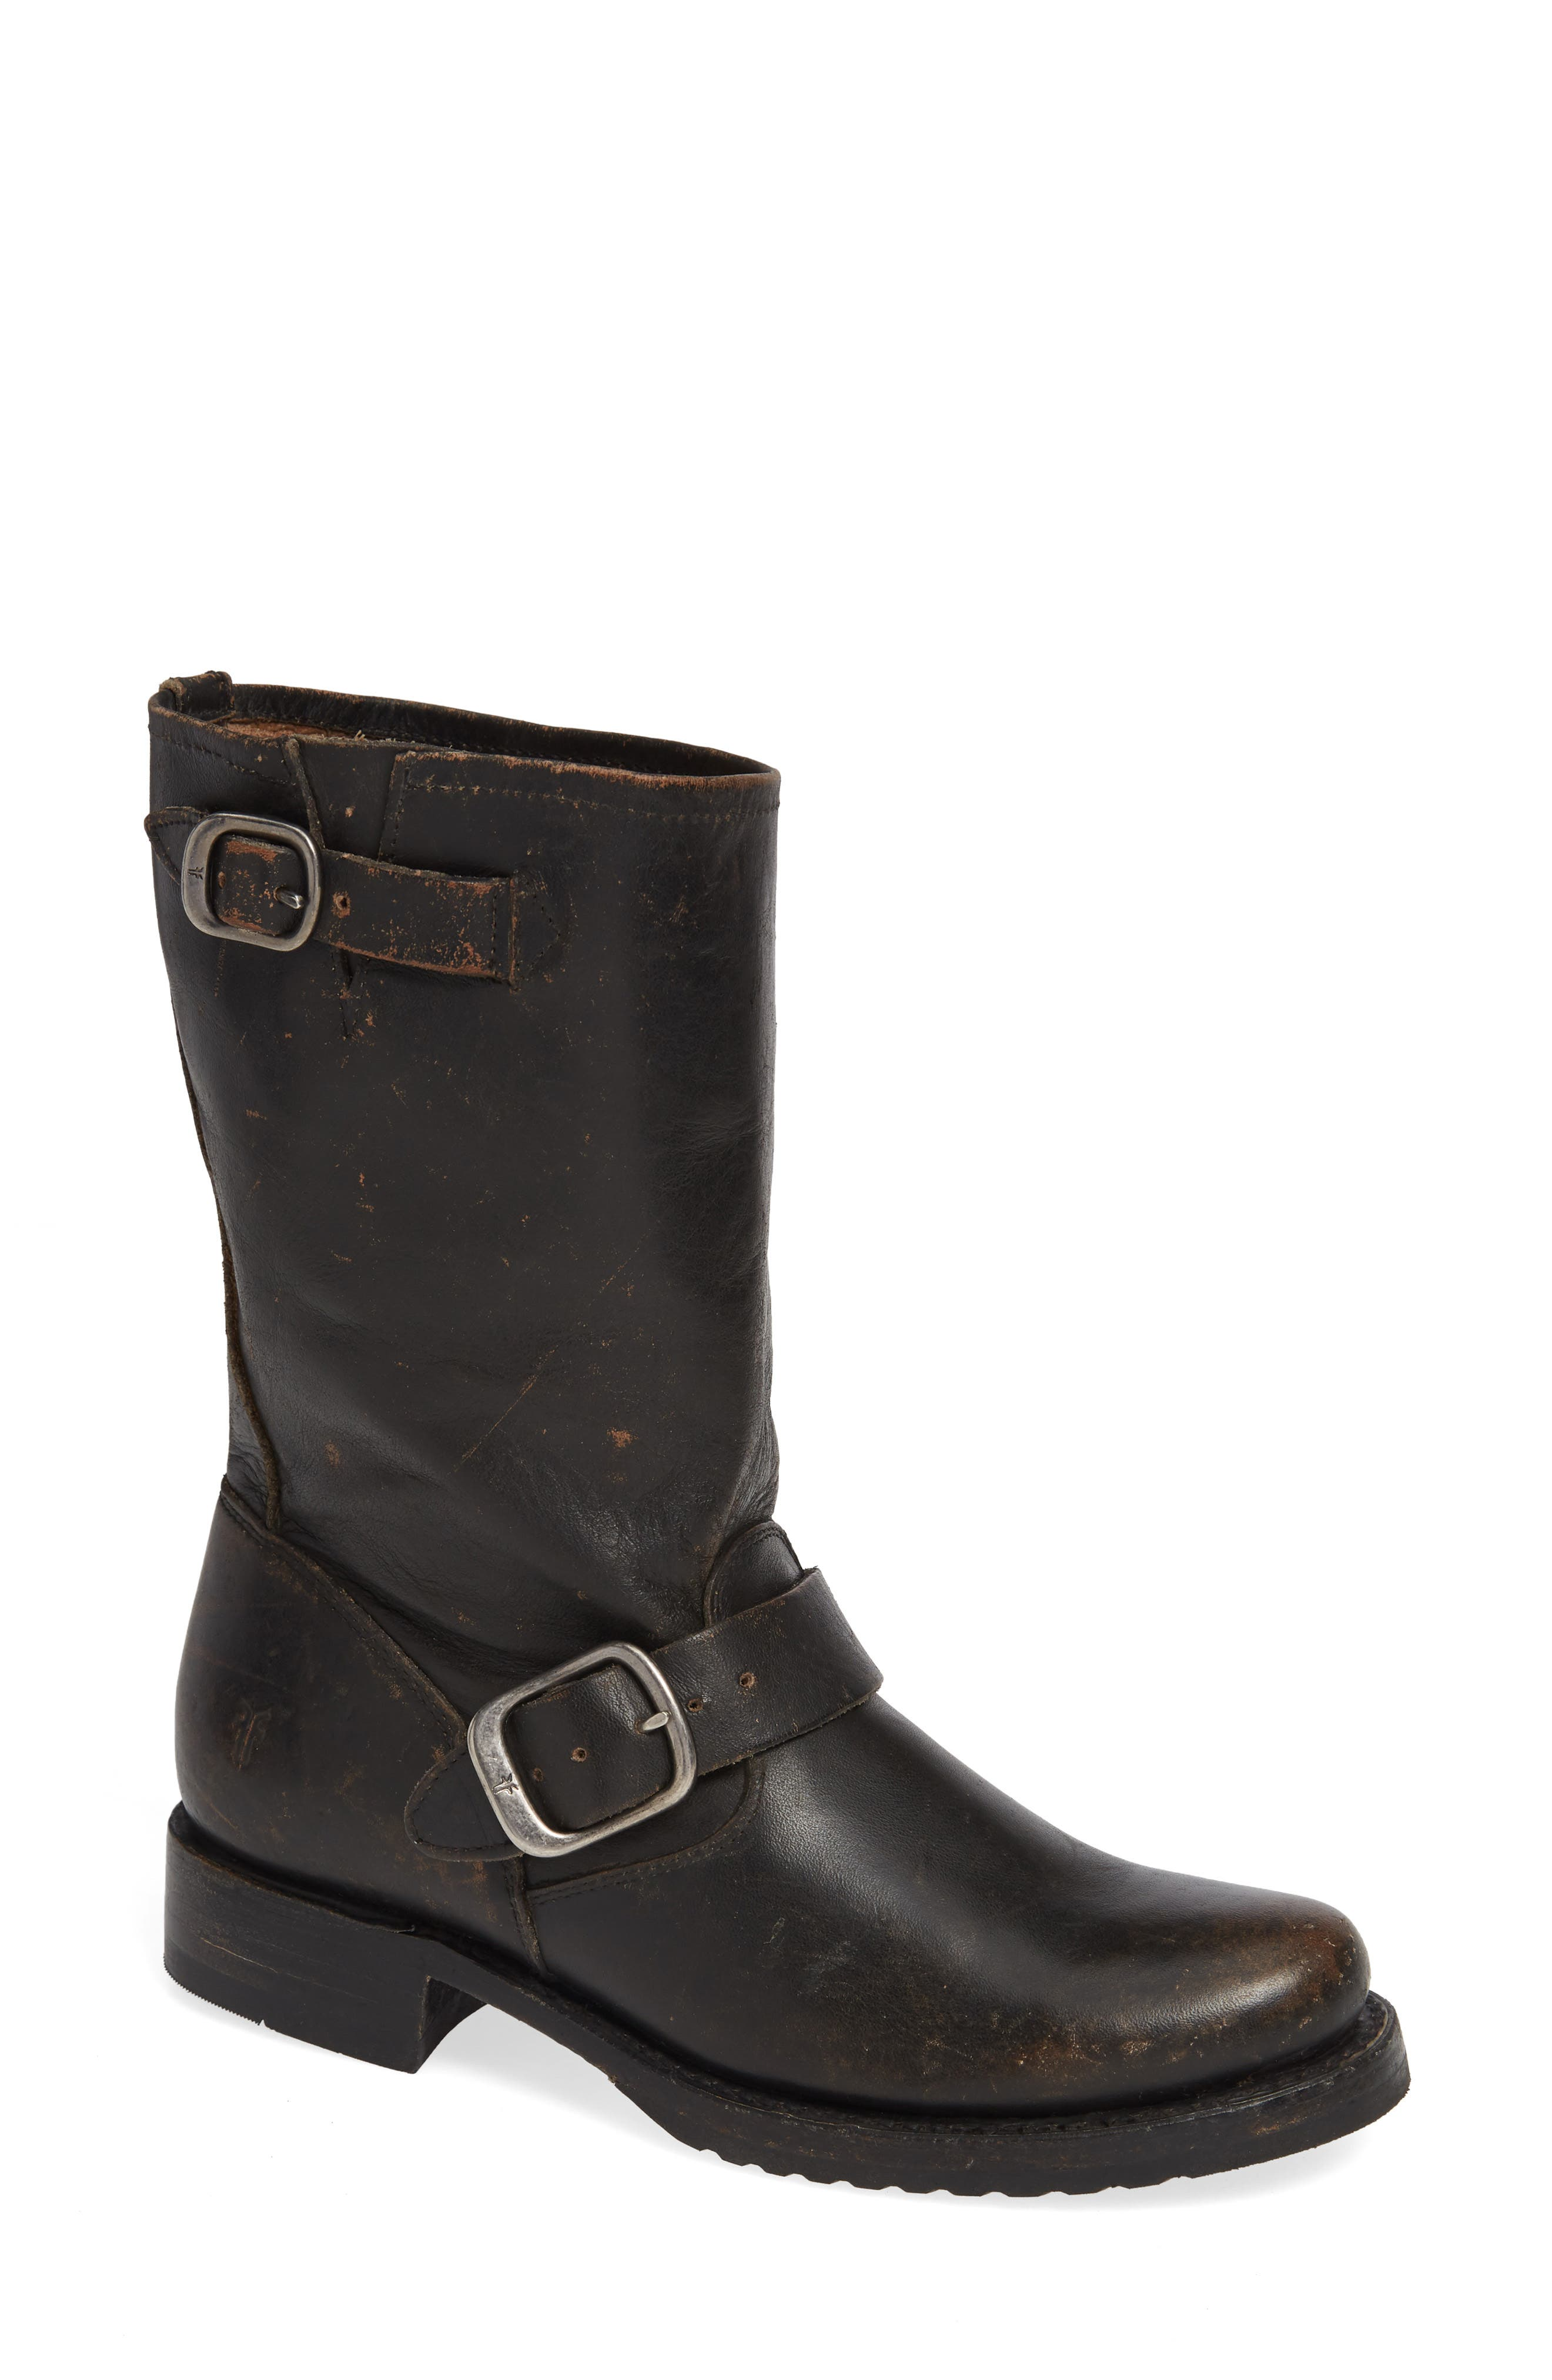 FRYE, 'Veronica' Short Boot, Main thumbnail 1, color, BLACK BRUSH OFF LEATHER